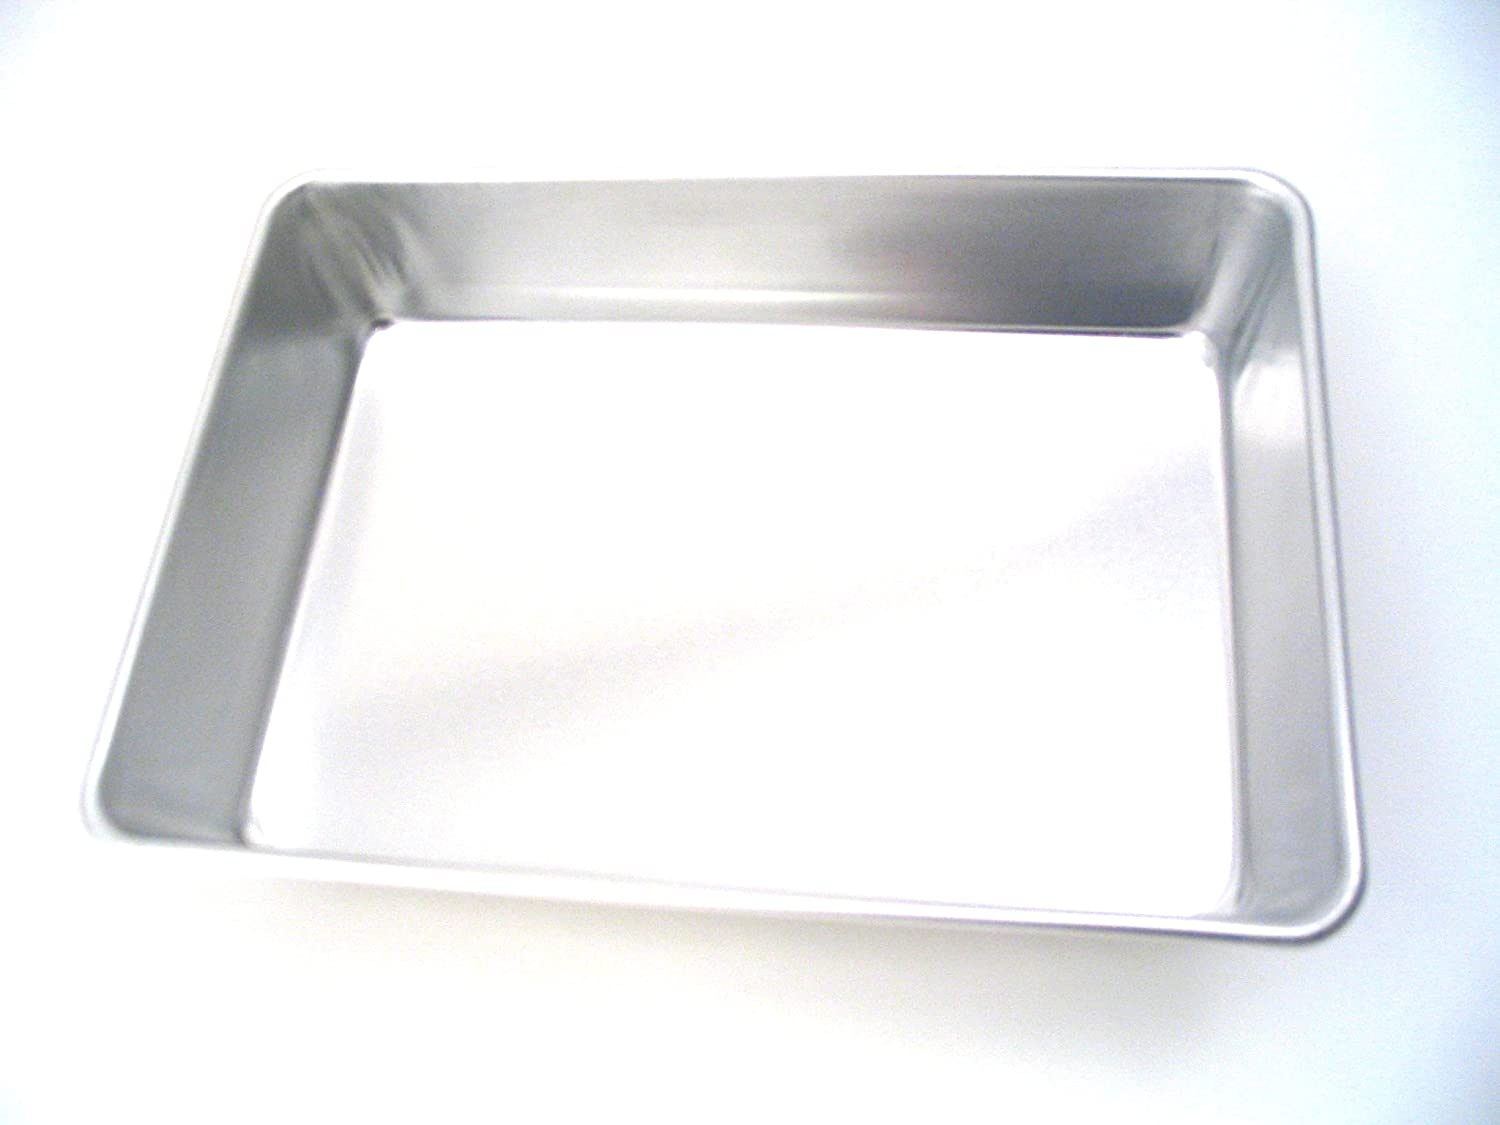 Kitchen Supply Toaster Oven Roasting Pan, 9-1/4-Inch by 6-1/2-Inch by 2-Inch 3351